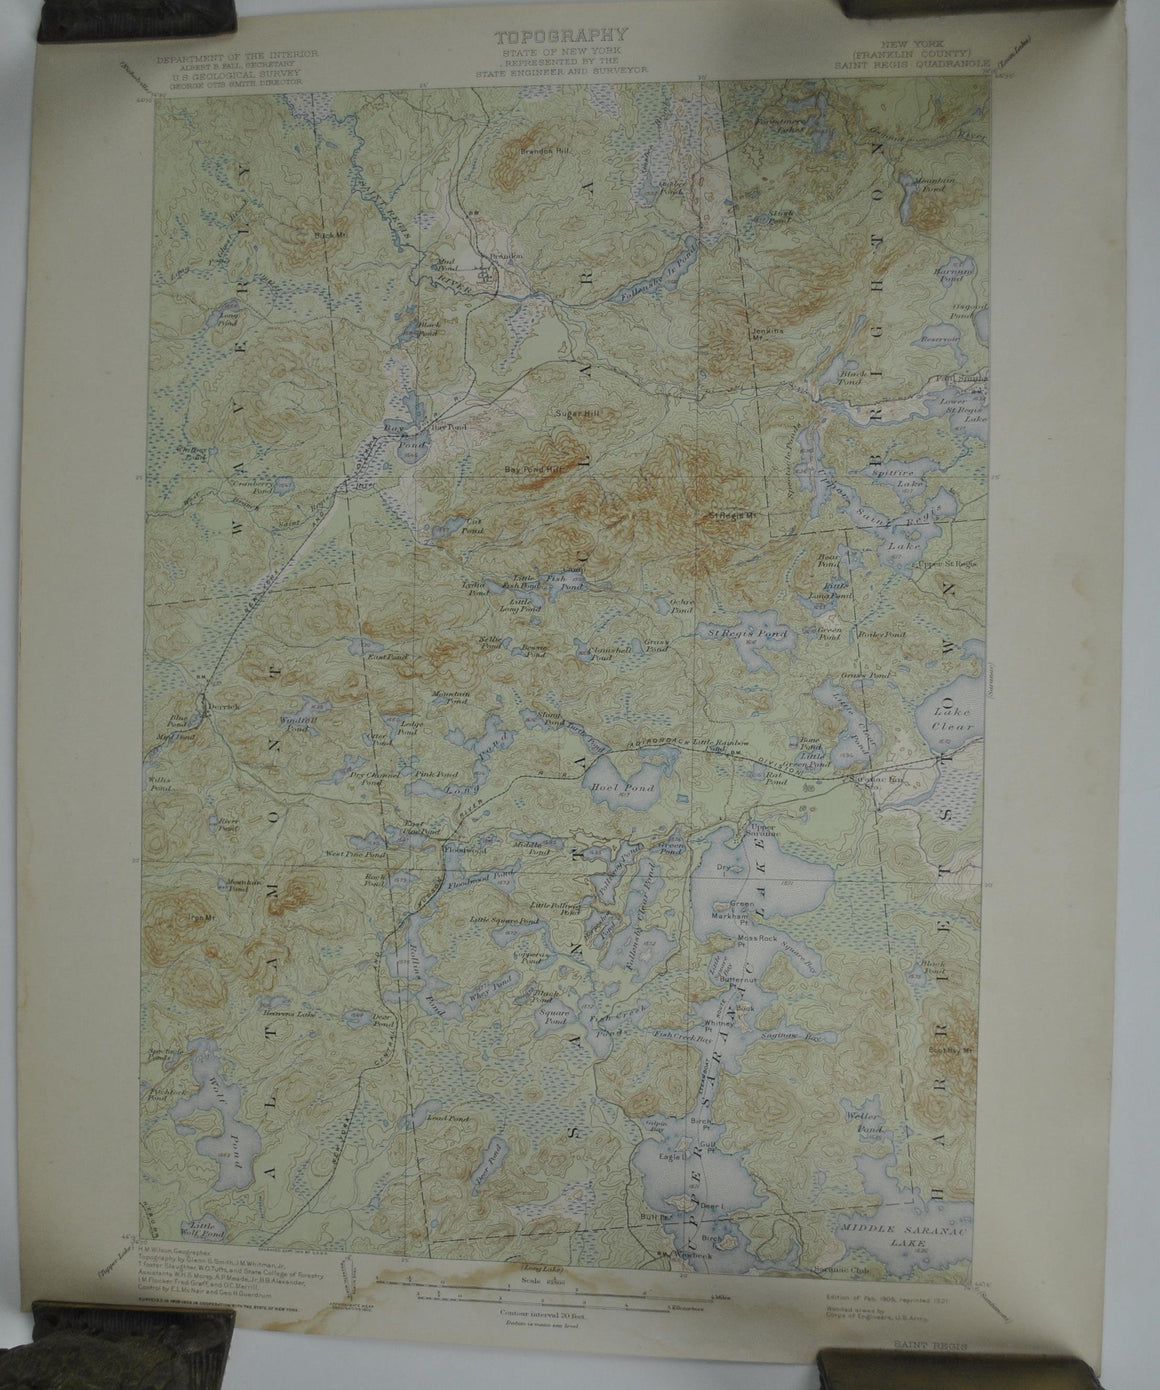 Franklin County Saint Regis New York Antique Topographic Map 1921